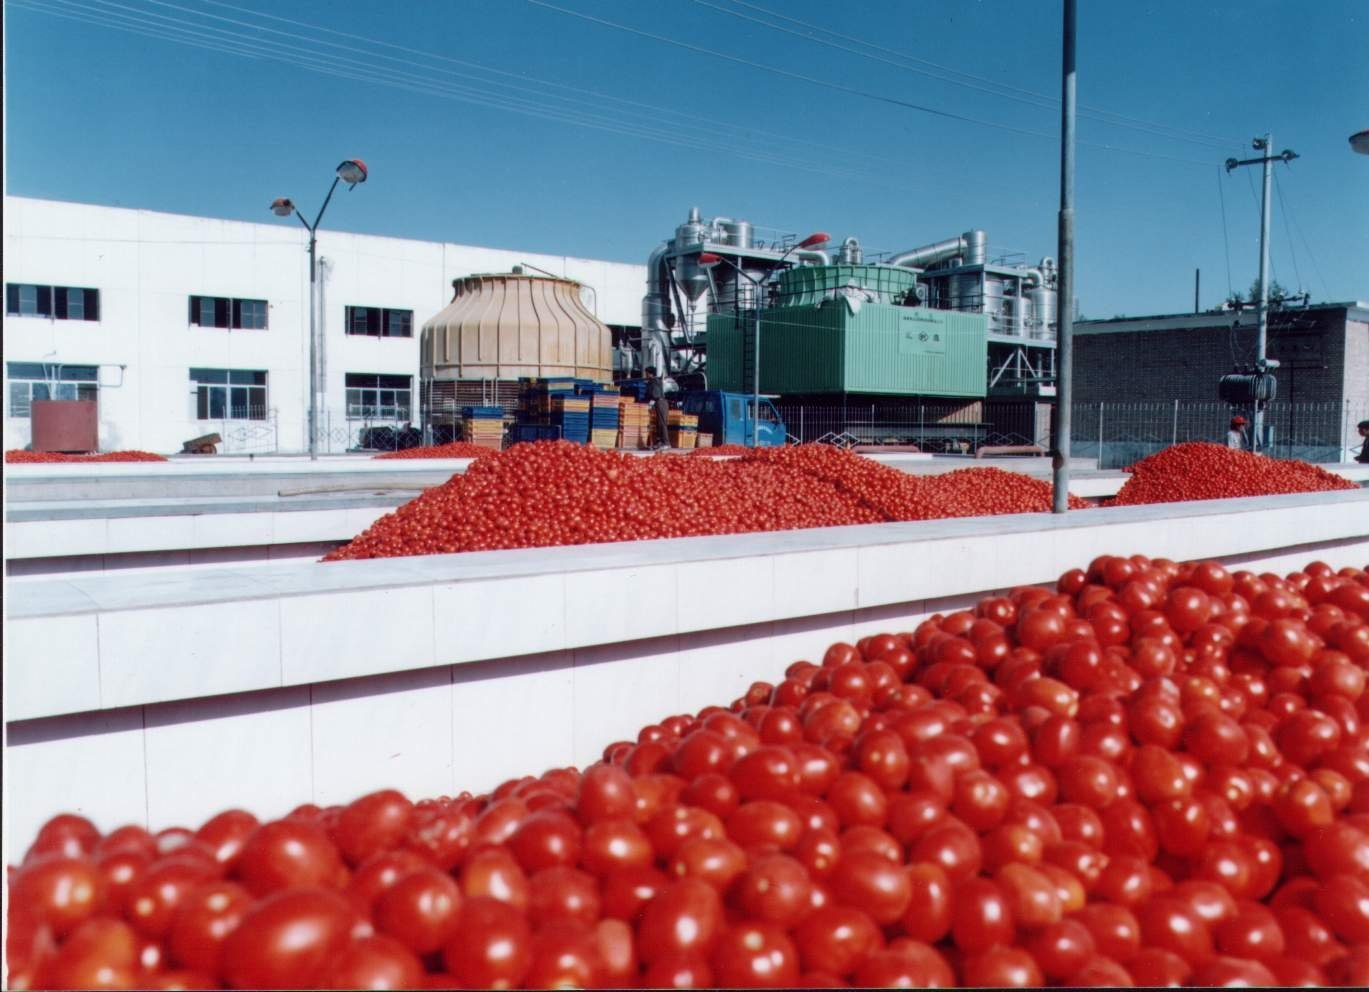 Tomato - FG Announces New Policy to Boost Tomato Production In Nigeria